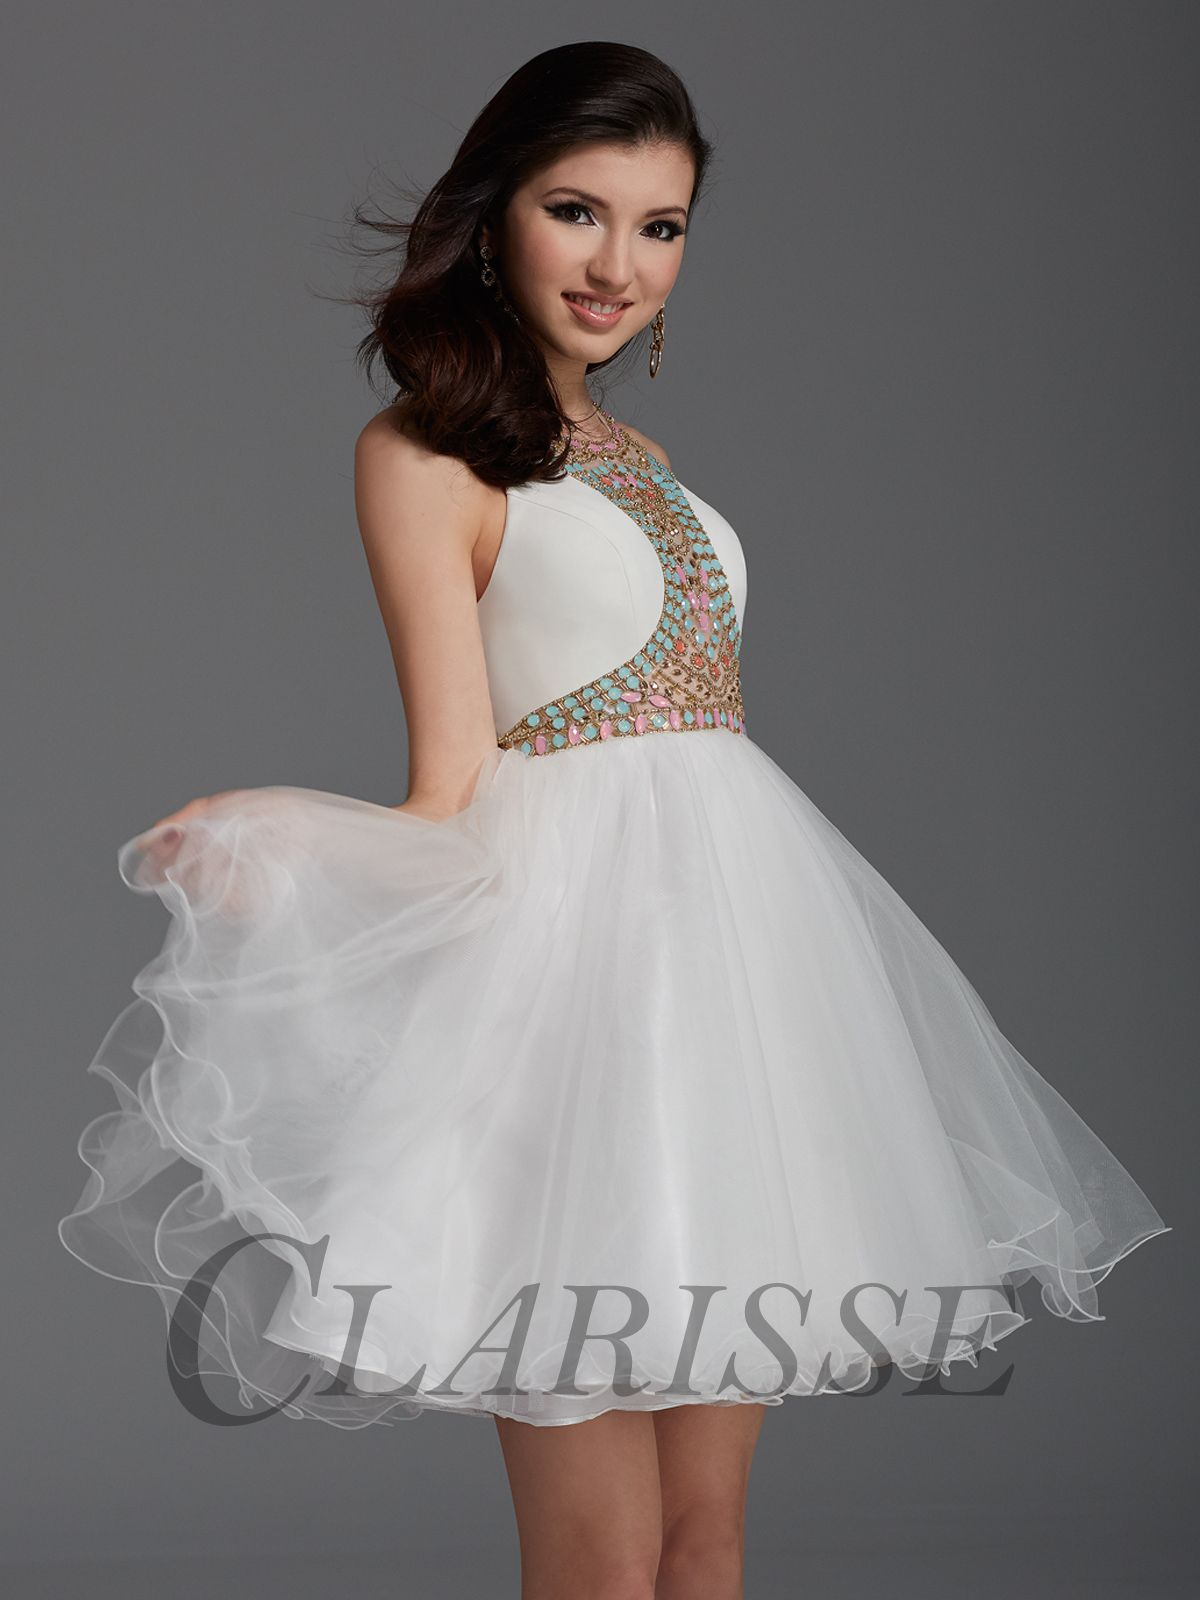 Clarisse white homecoming dress unique homecoming dresses